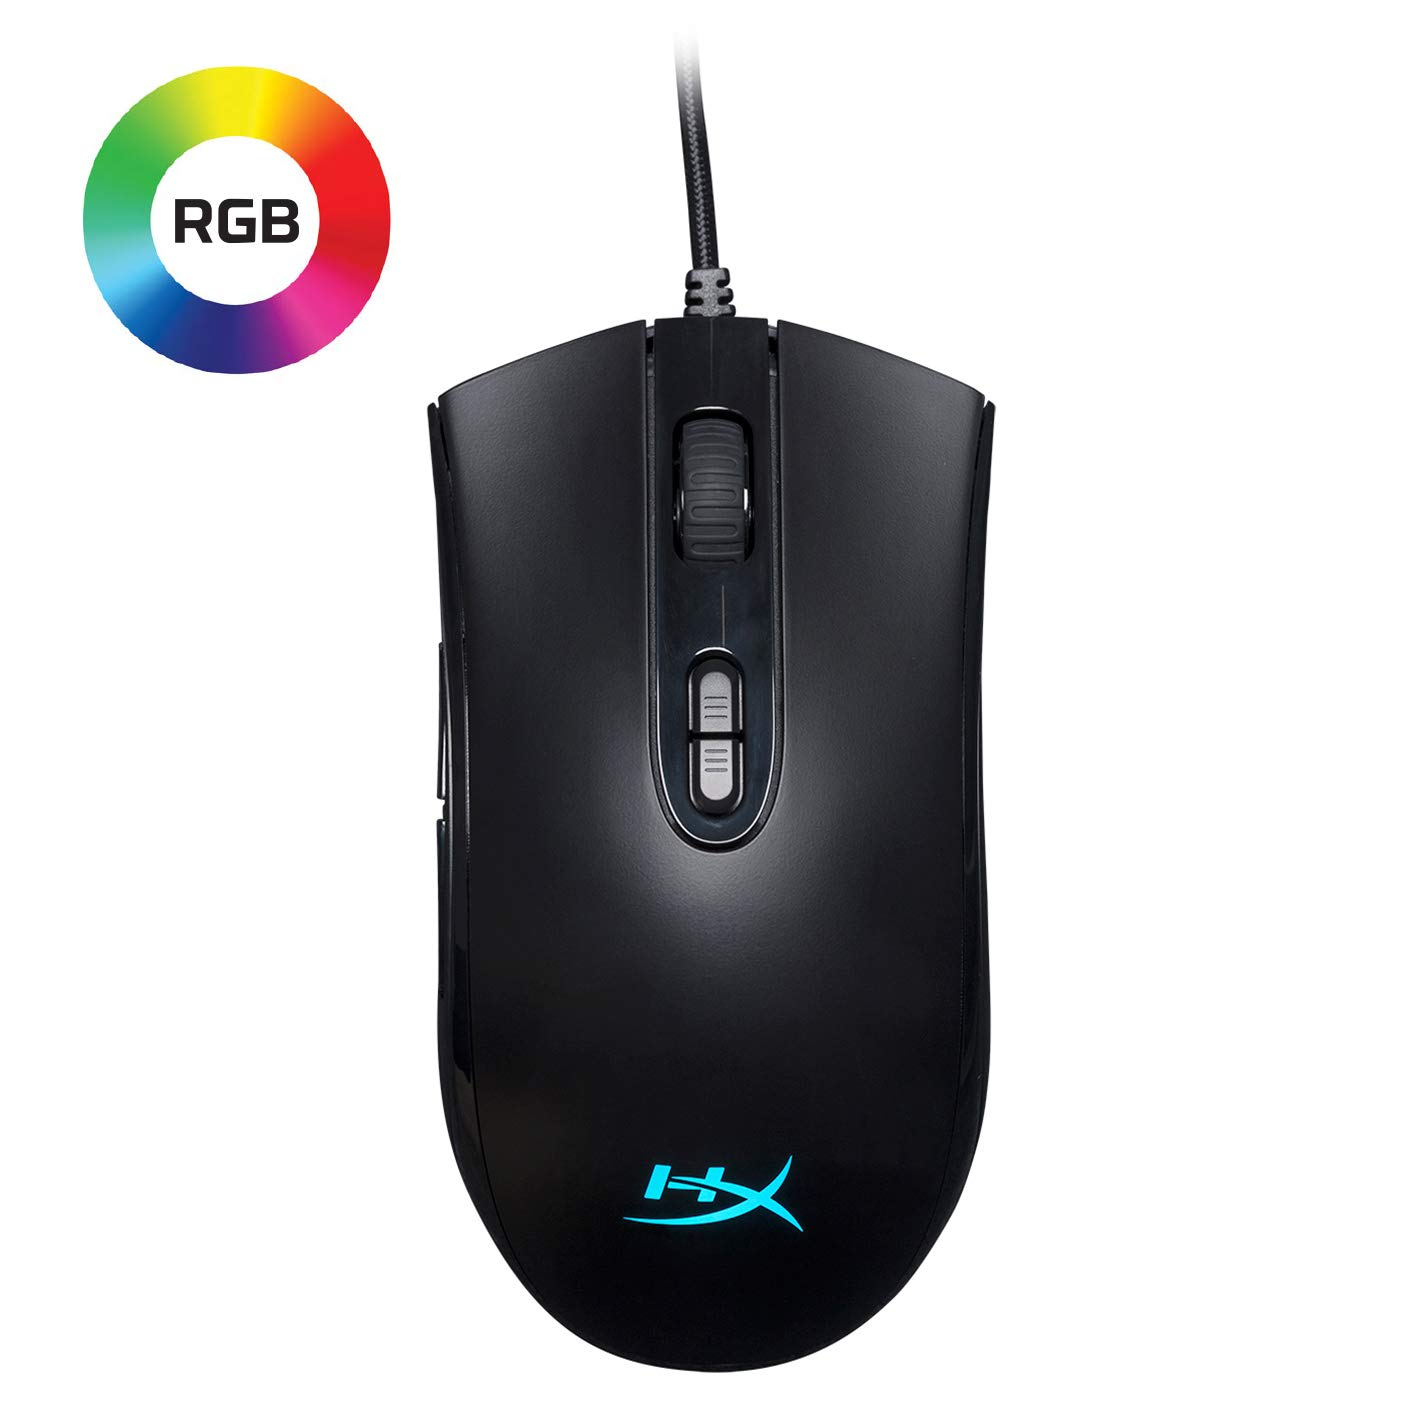 HyperX Pulsefire Core – RGB Gaming Mouse, Software Controlled RGB Light Effects Macro Customization, Pixart 3327 Sensor up to 6,200DPI, 7 Programmable Buttons, Mouse Weight 87g HX-MC004B